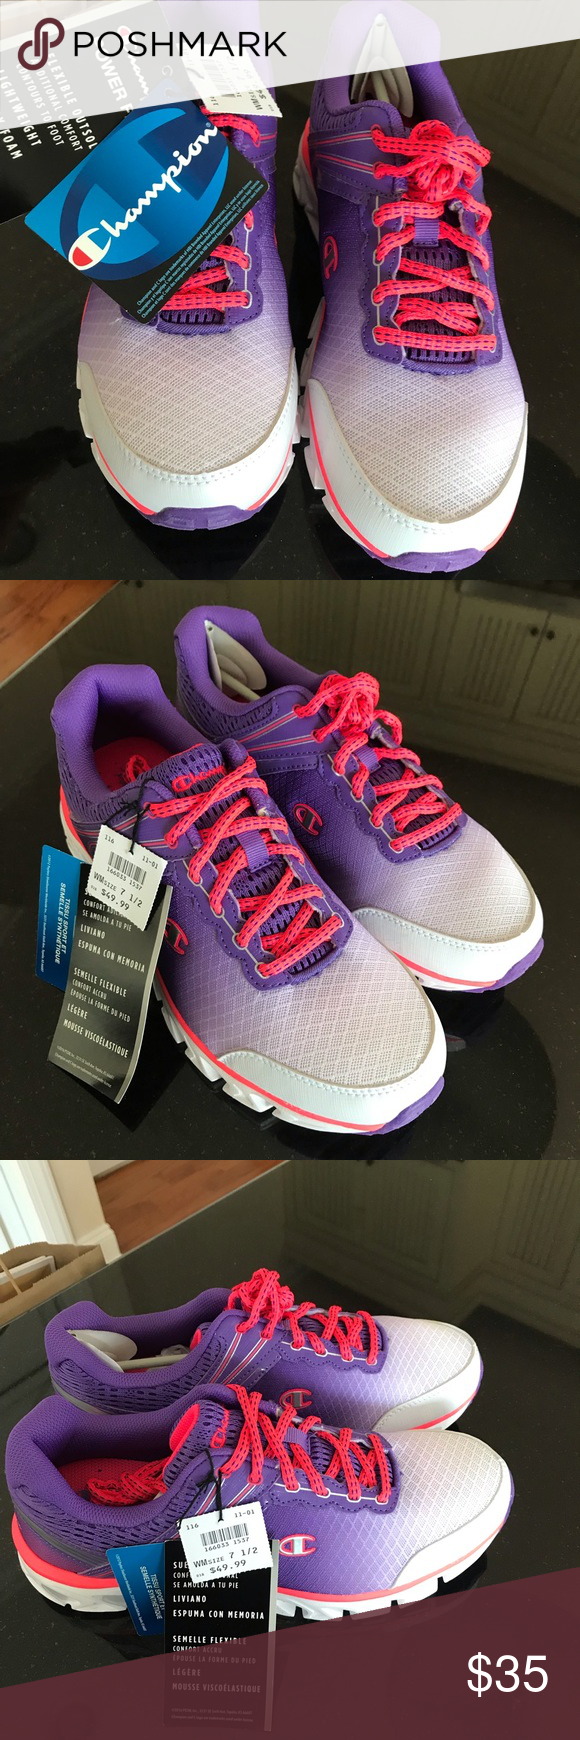 de396d67986 Champion Brand NWT Awesome Ombre Size 7-1 2 Champion Brand NWT Awesome  Purple